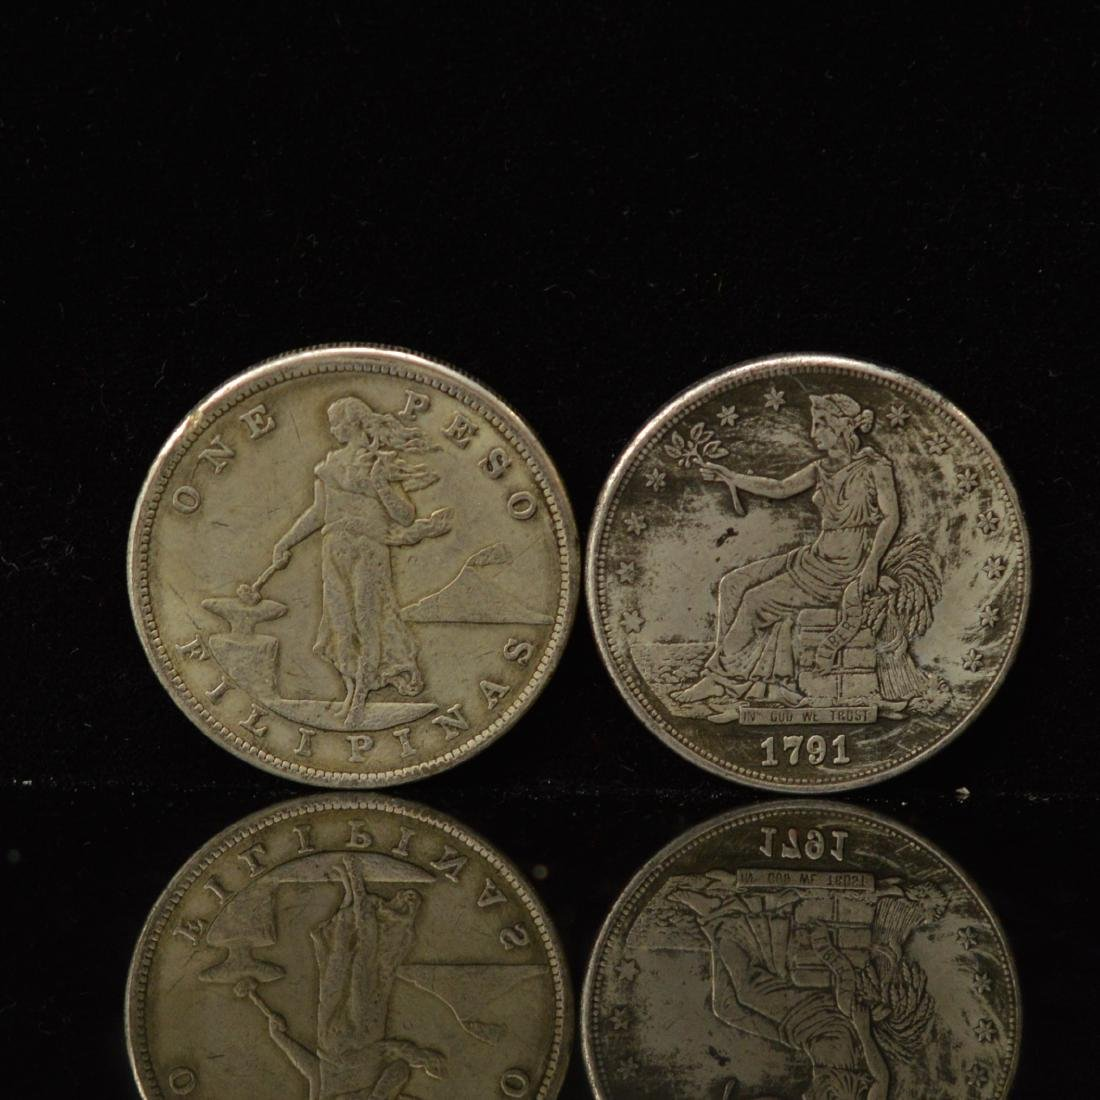 Two US Silver coins